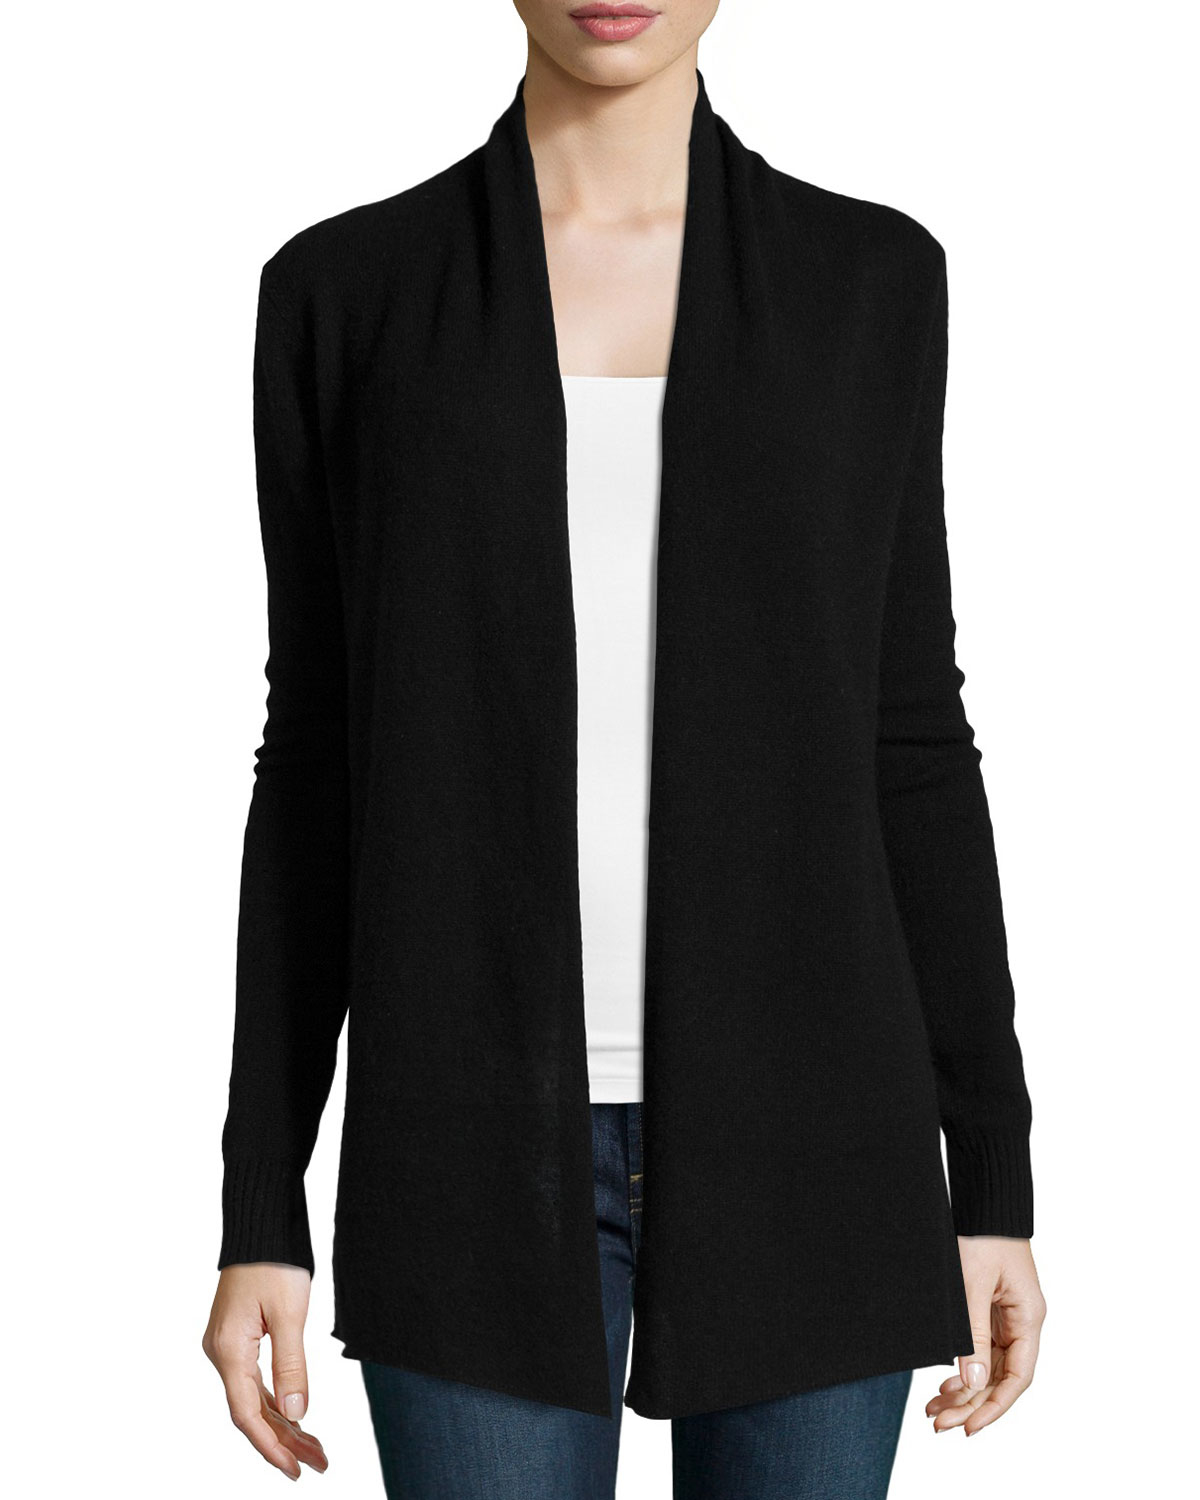 Neiman marcus Cashmere Open-front Cardigan in Black | Lyst